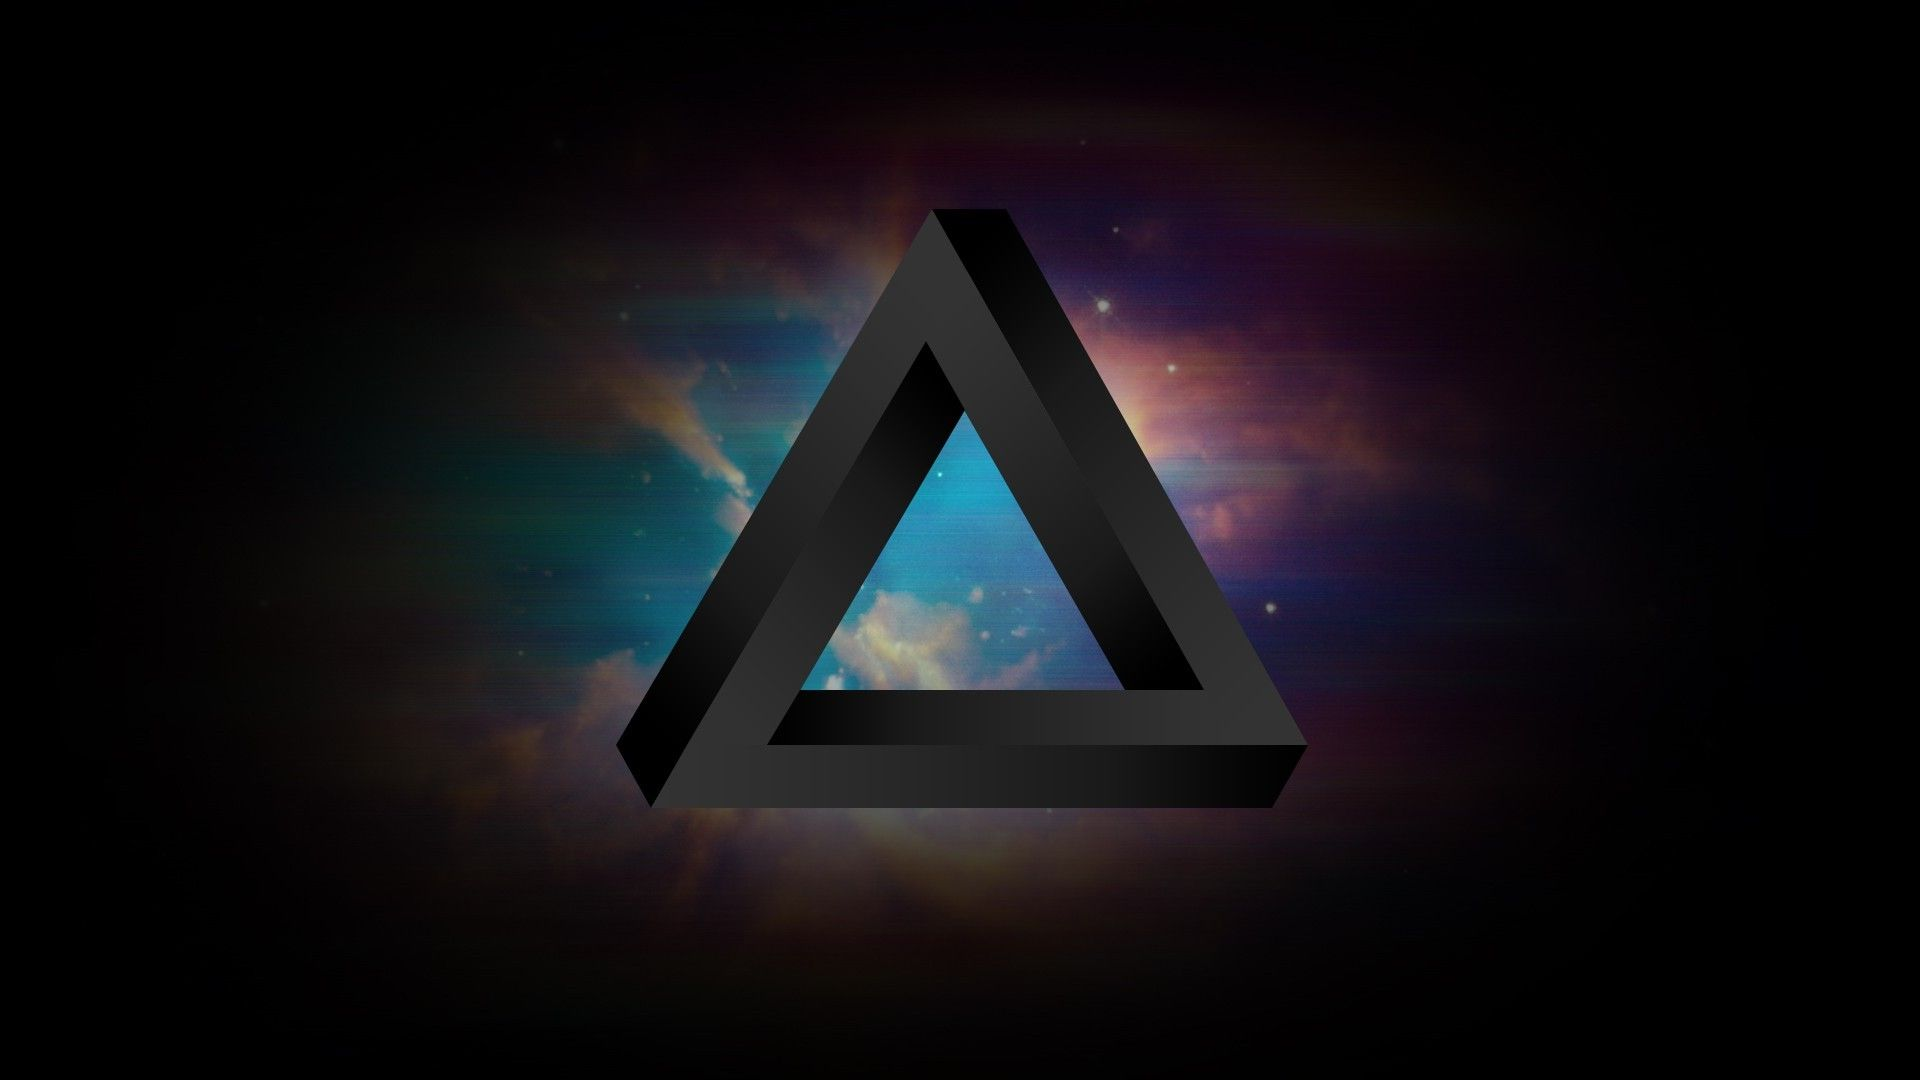 Triangle Space Tylercreatesworlds Penrose Triangle Wallpapers Geometric Abstract Wallpaper Background Hd Wallpaper Android Wallpaper Abstract